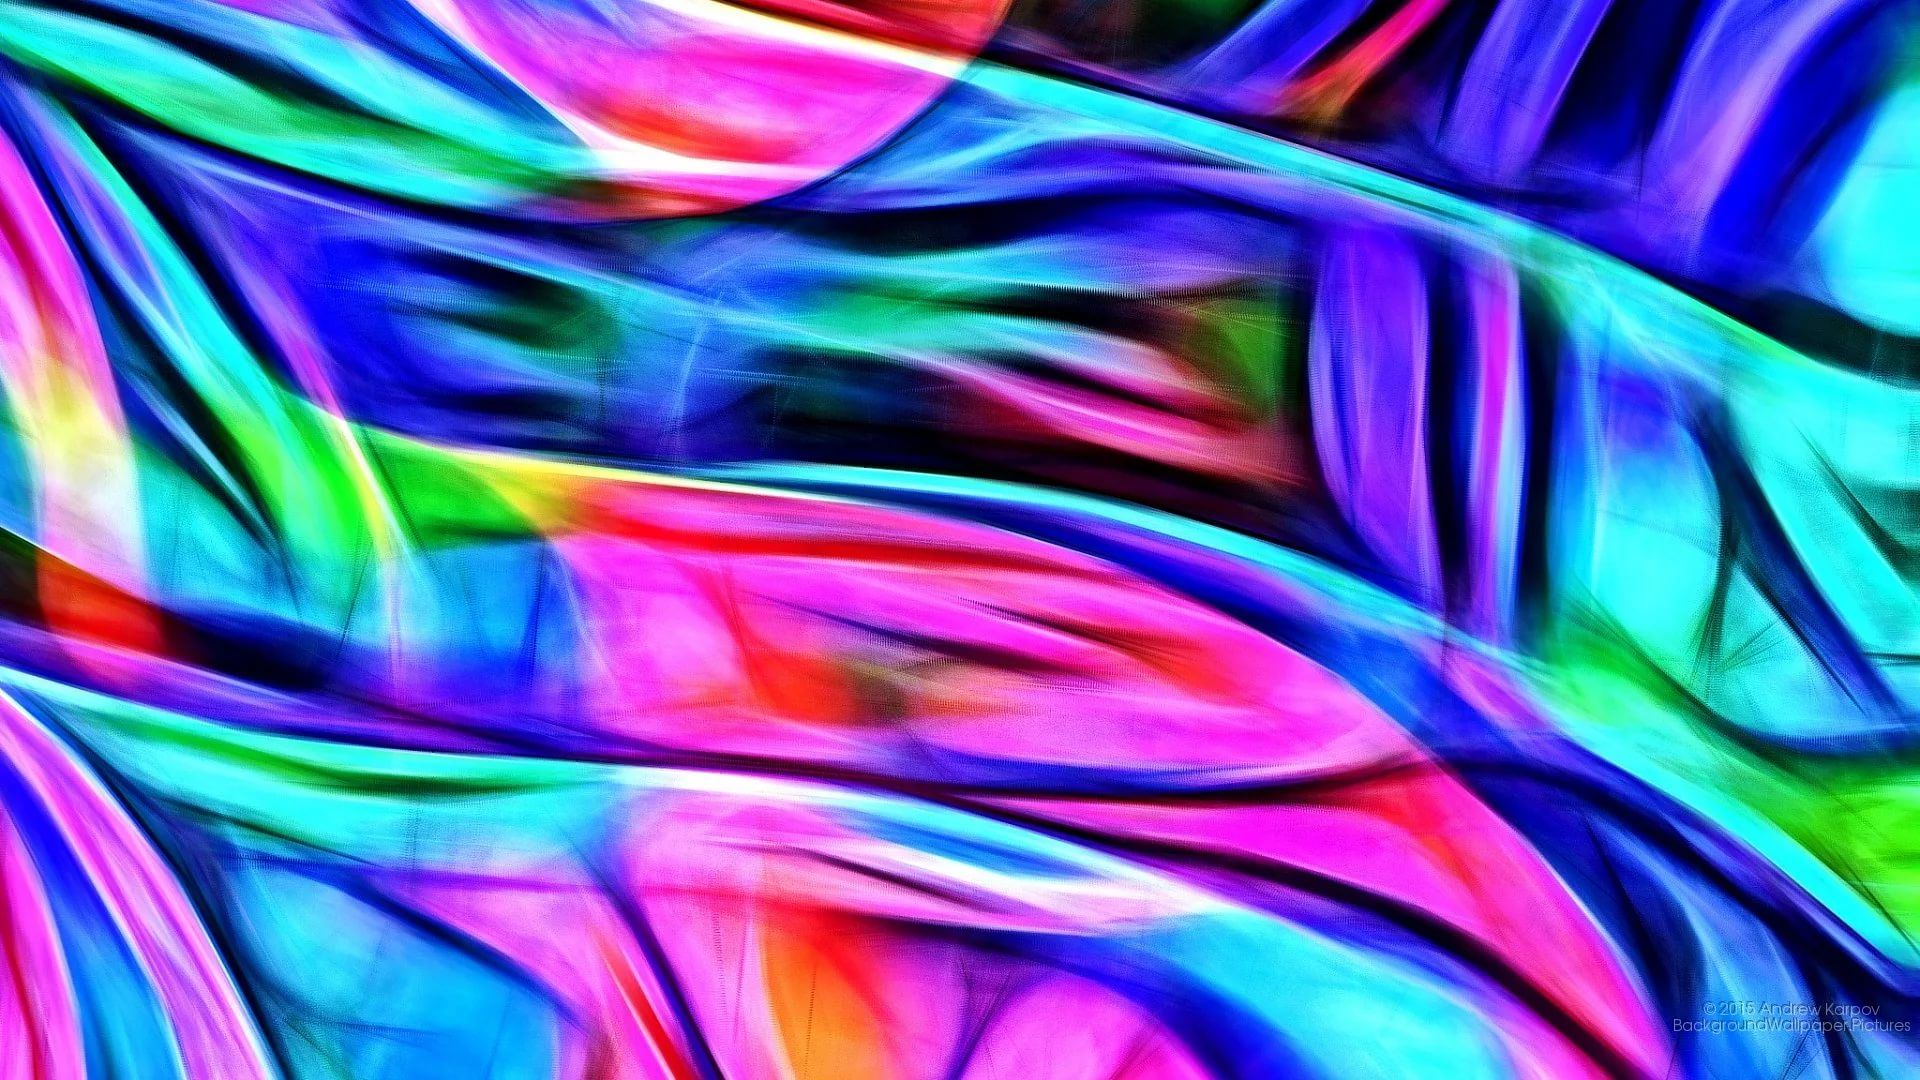 Holographic Cool HD Wallpaper